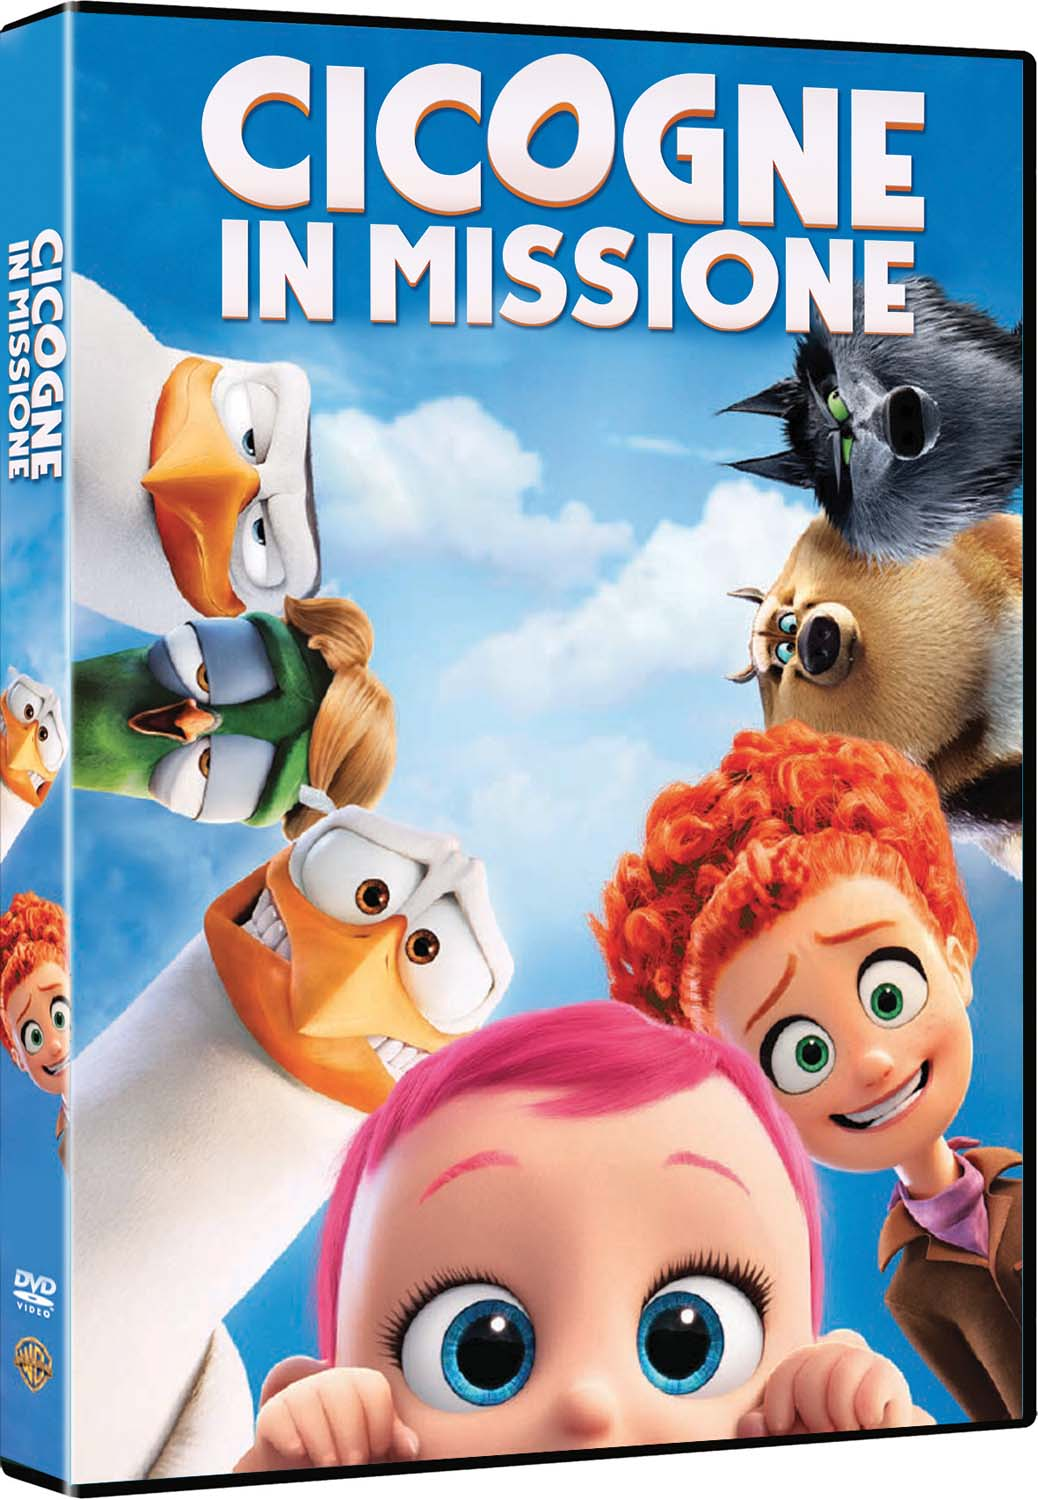 CICOGNE IN MISSIONE (DVD)